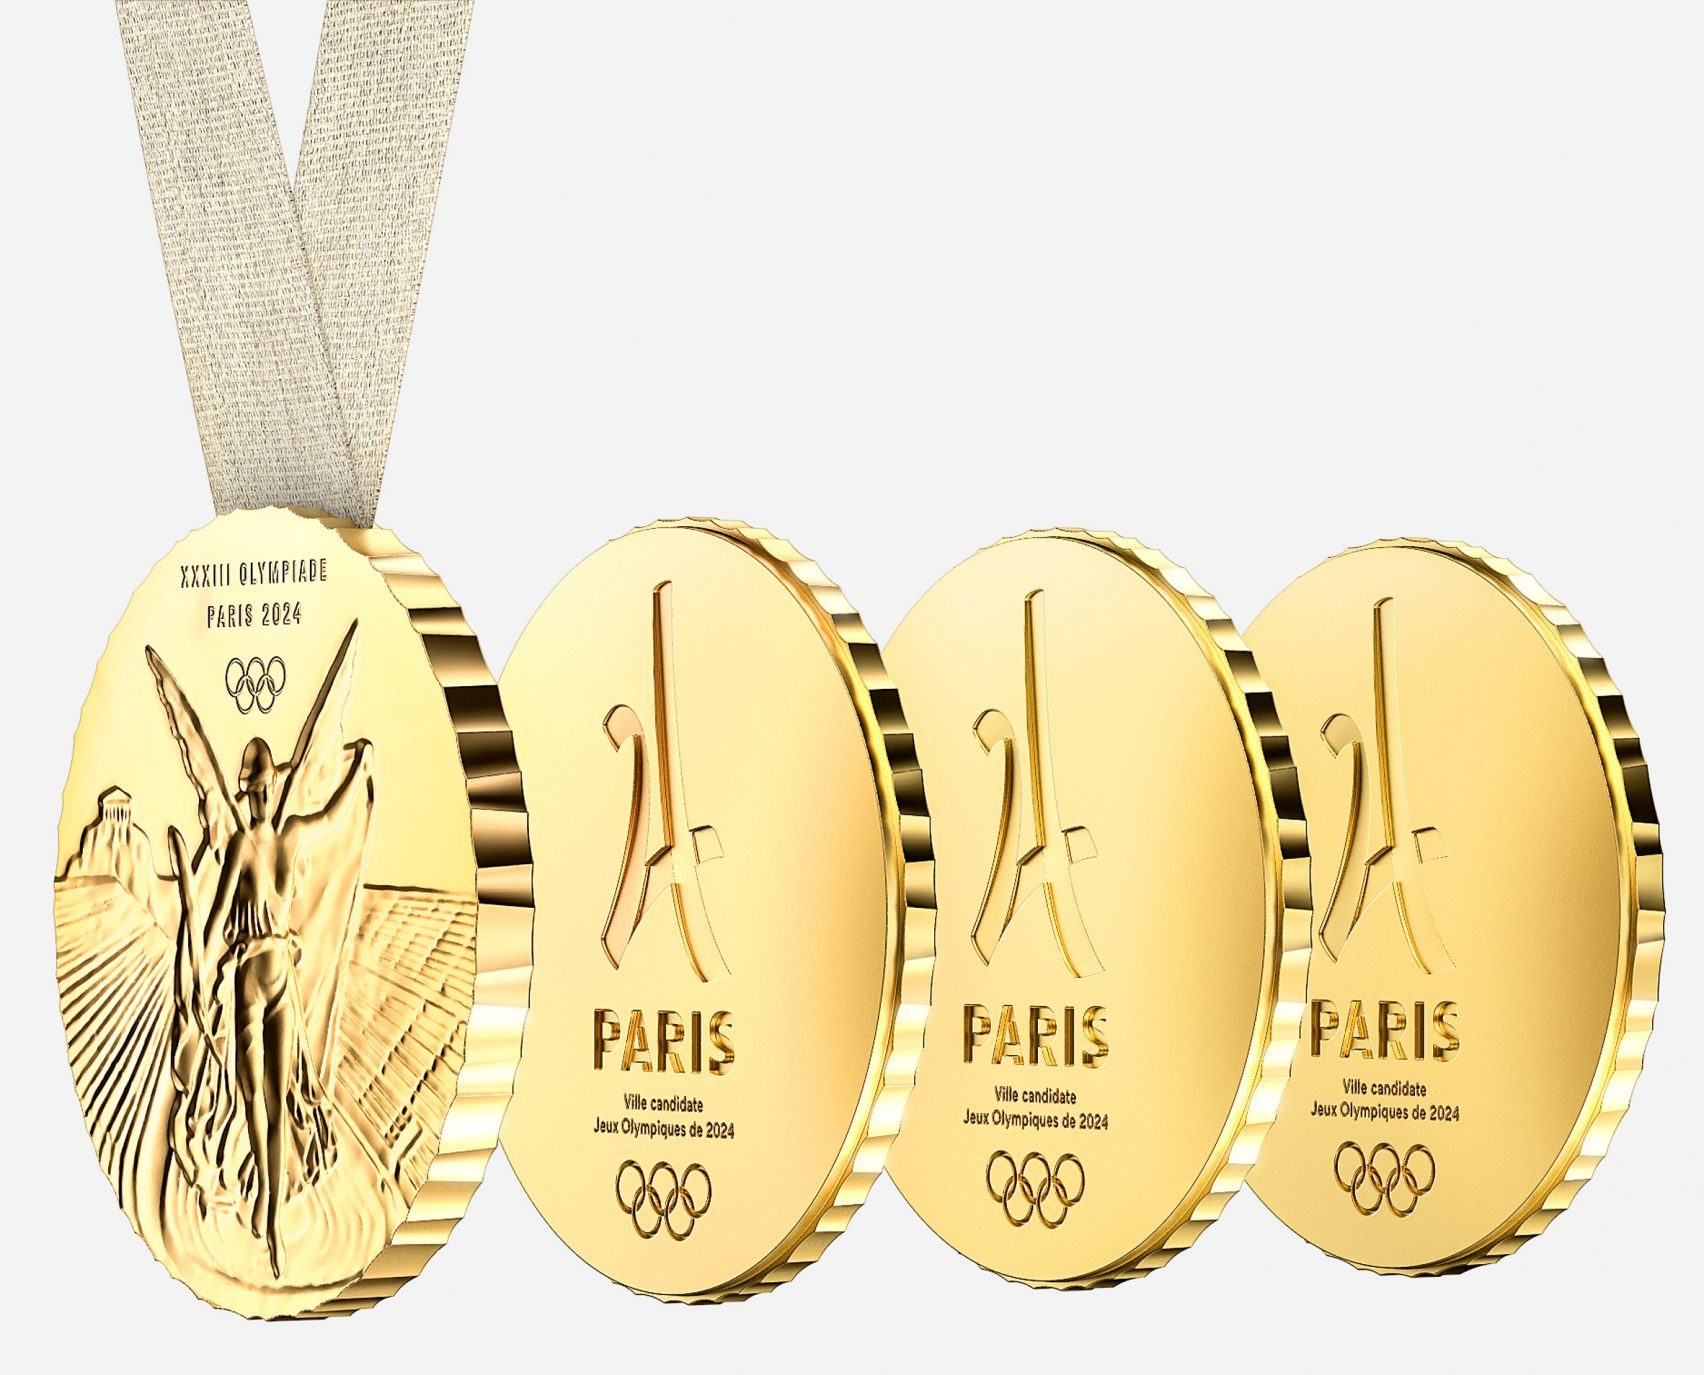 paris-2024-olympic-games-medals-philippe-starck-design_dezeen_2364_col_1-1704x1375